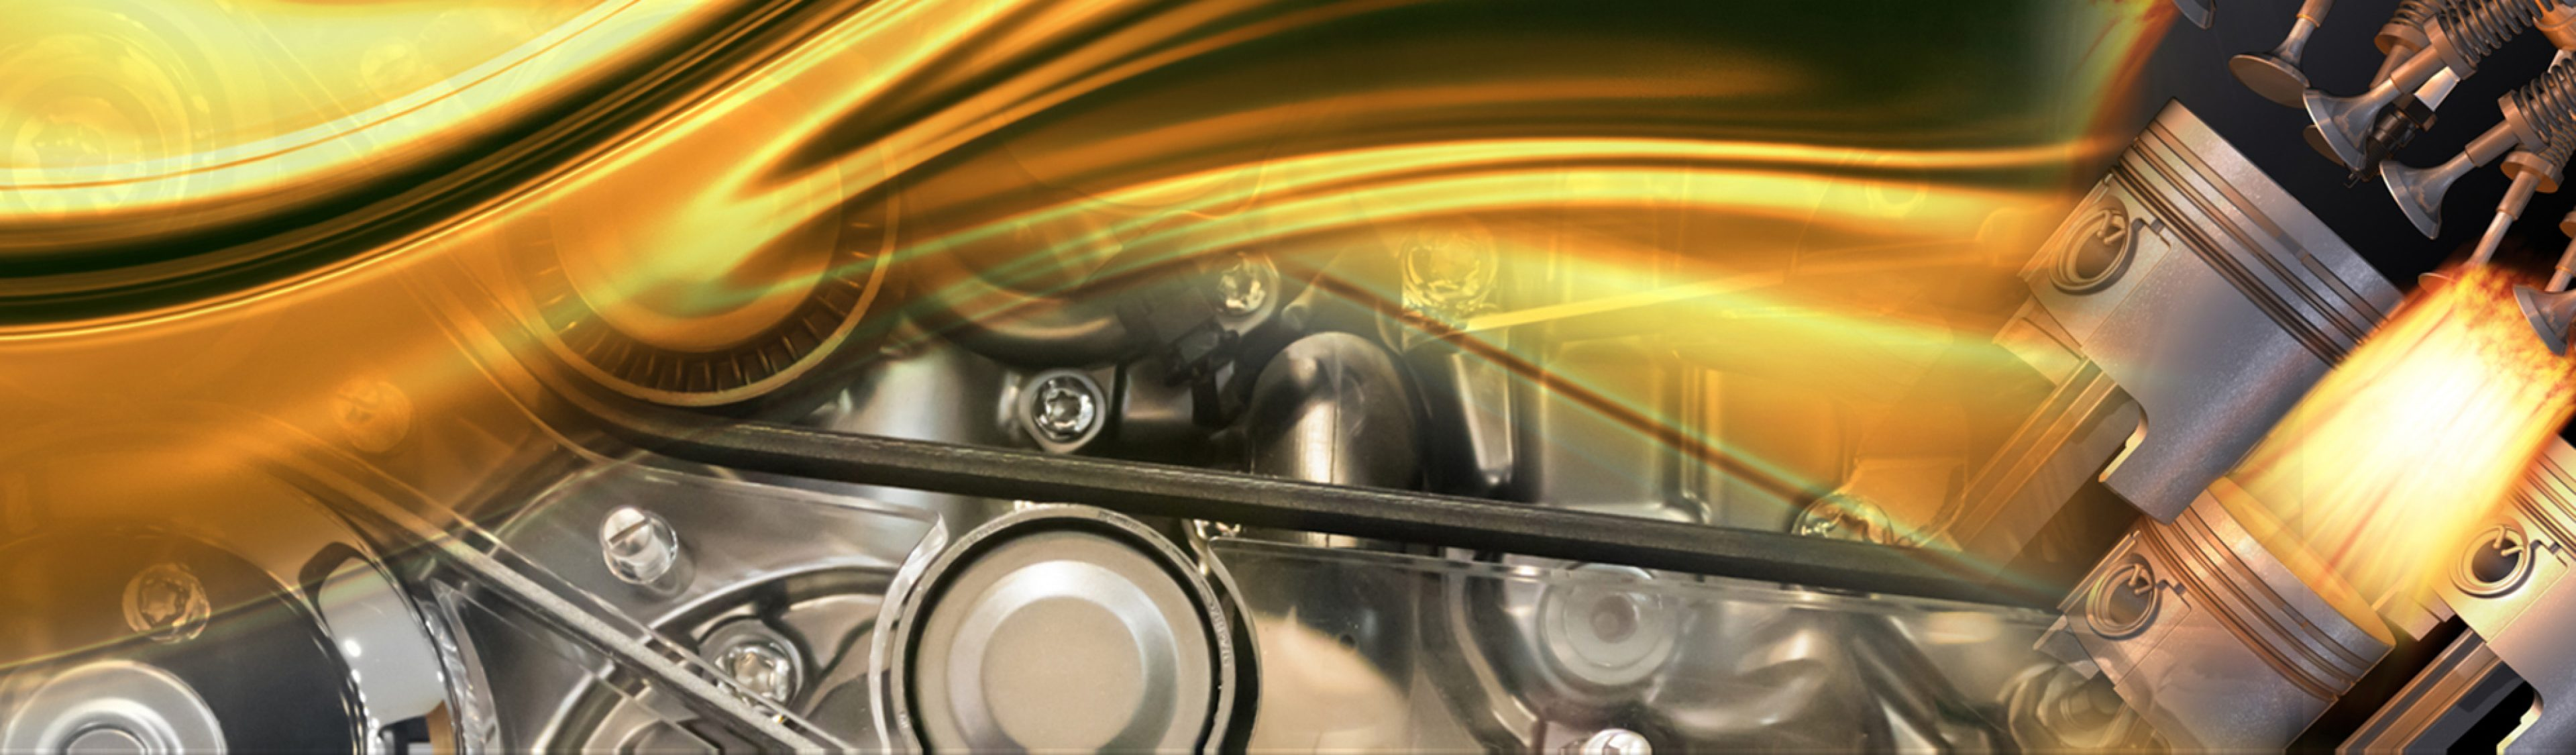 ENGINE OIL VISCOSITY GRADES | CAR ENGINE OIL & FLUIDS | Home